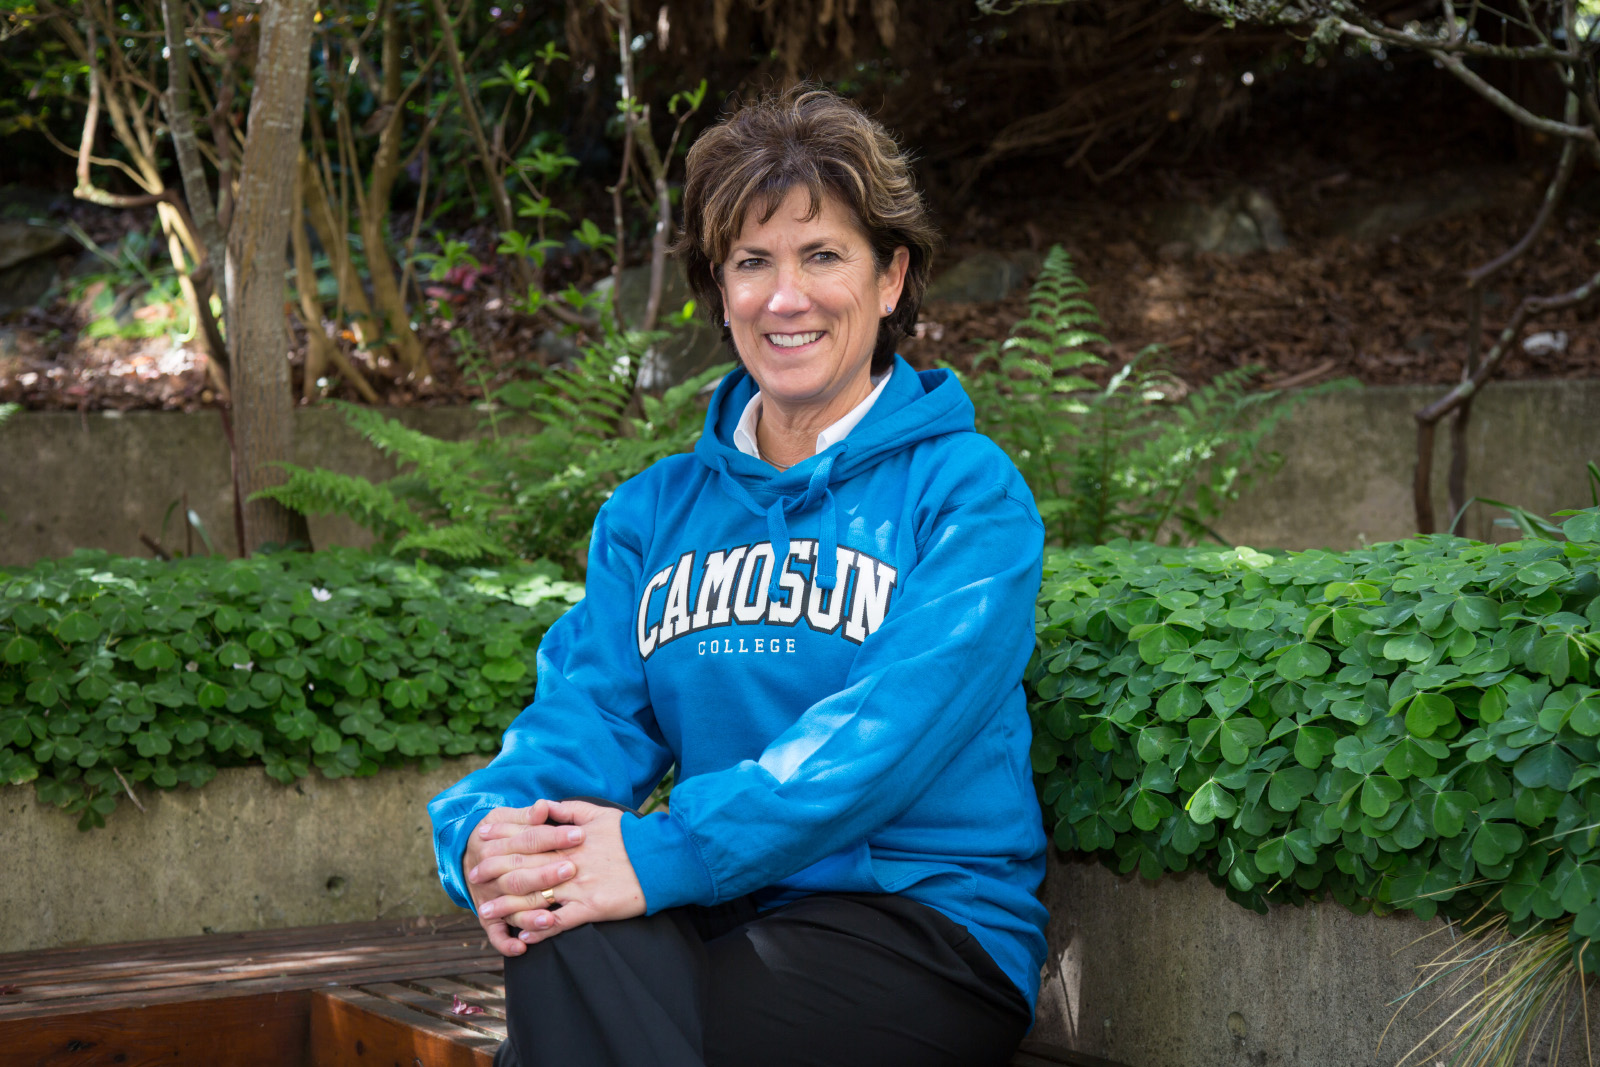 Sheri Bell, President, Camosun College